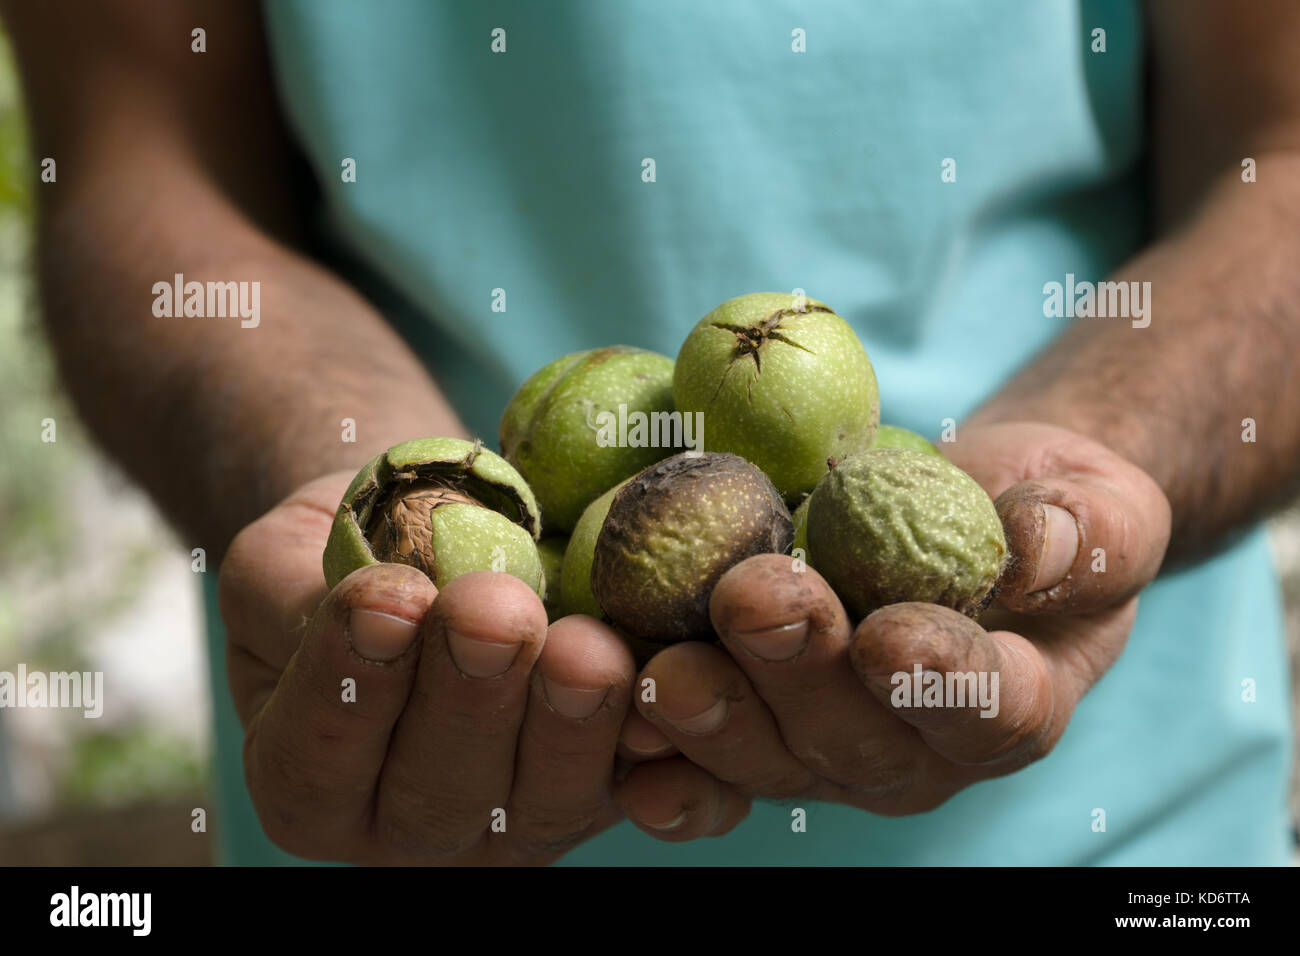 Uncleaned green walnuts in the hands of a farmer closeup horizontal - Stock Image